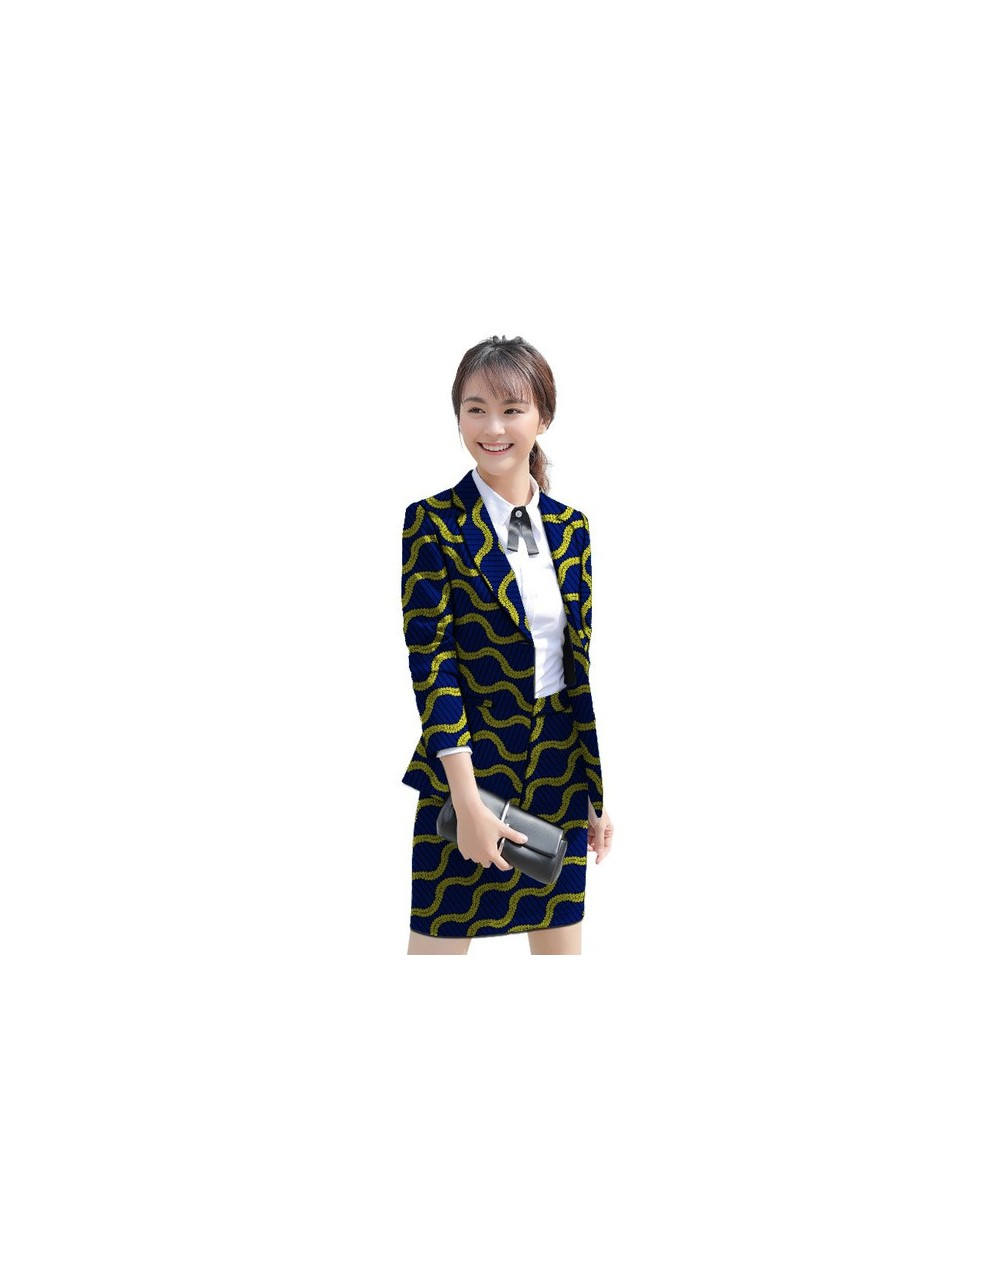 African clothes women's skirt suits slim fit fashion retro pattern Ankara ladies dashiki suits tailor made formal party wear...